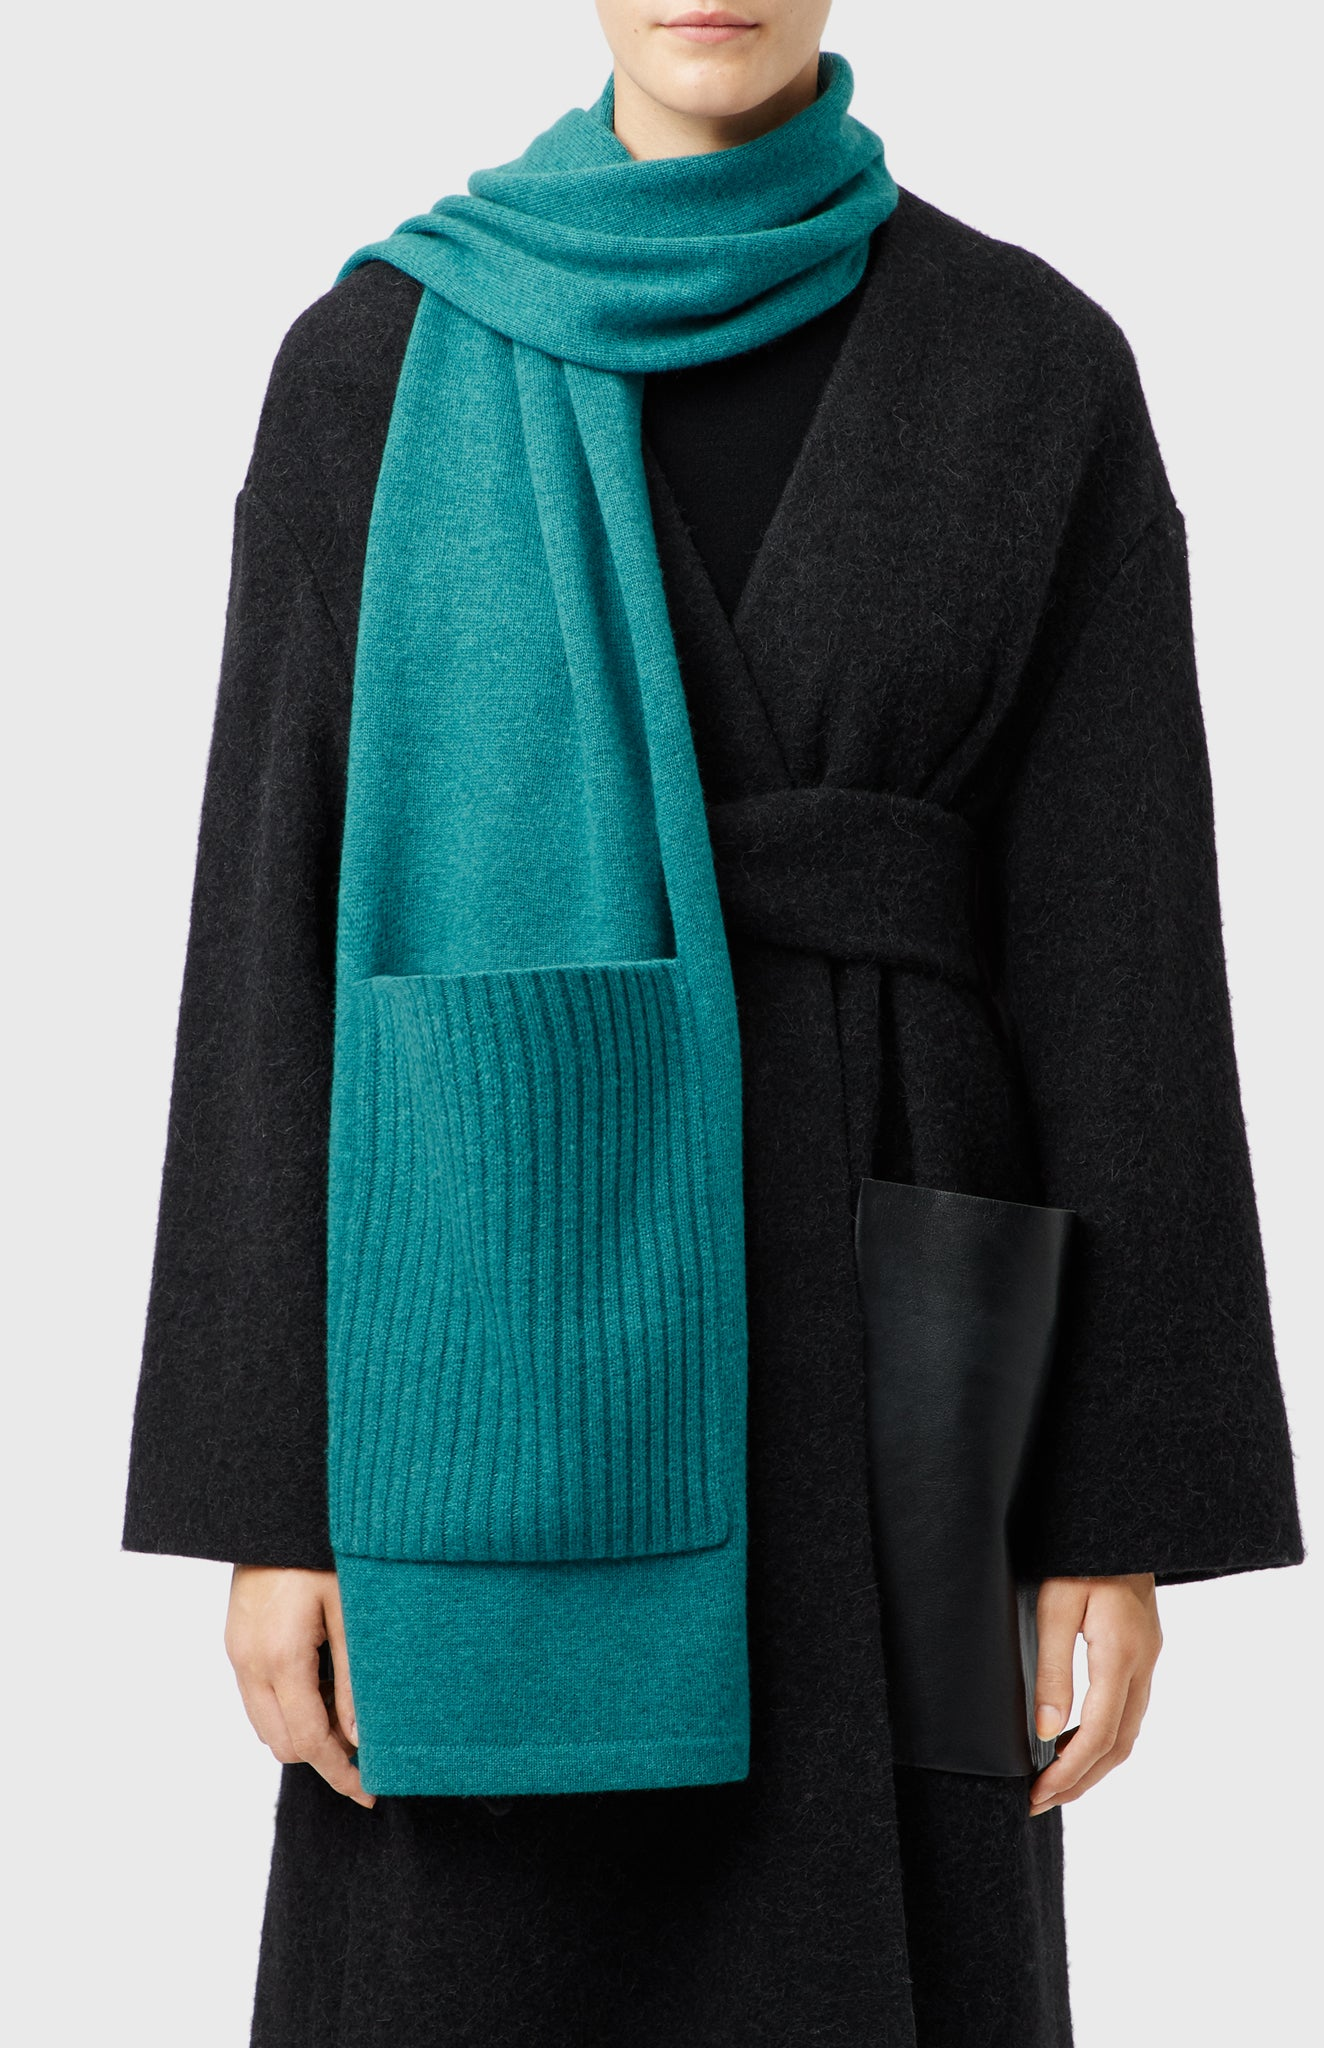 Ribbed Pocket Scarf In Teal Melange